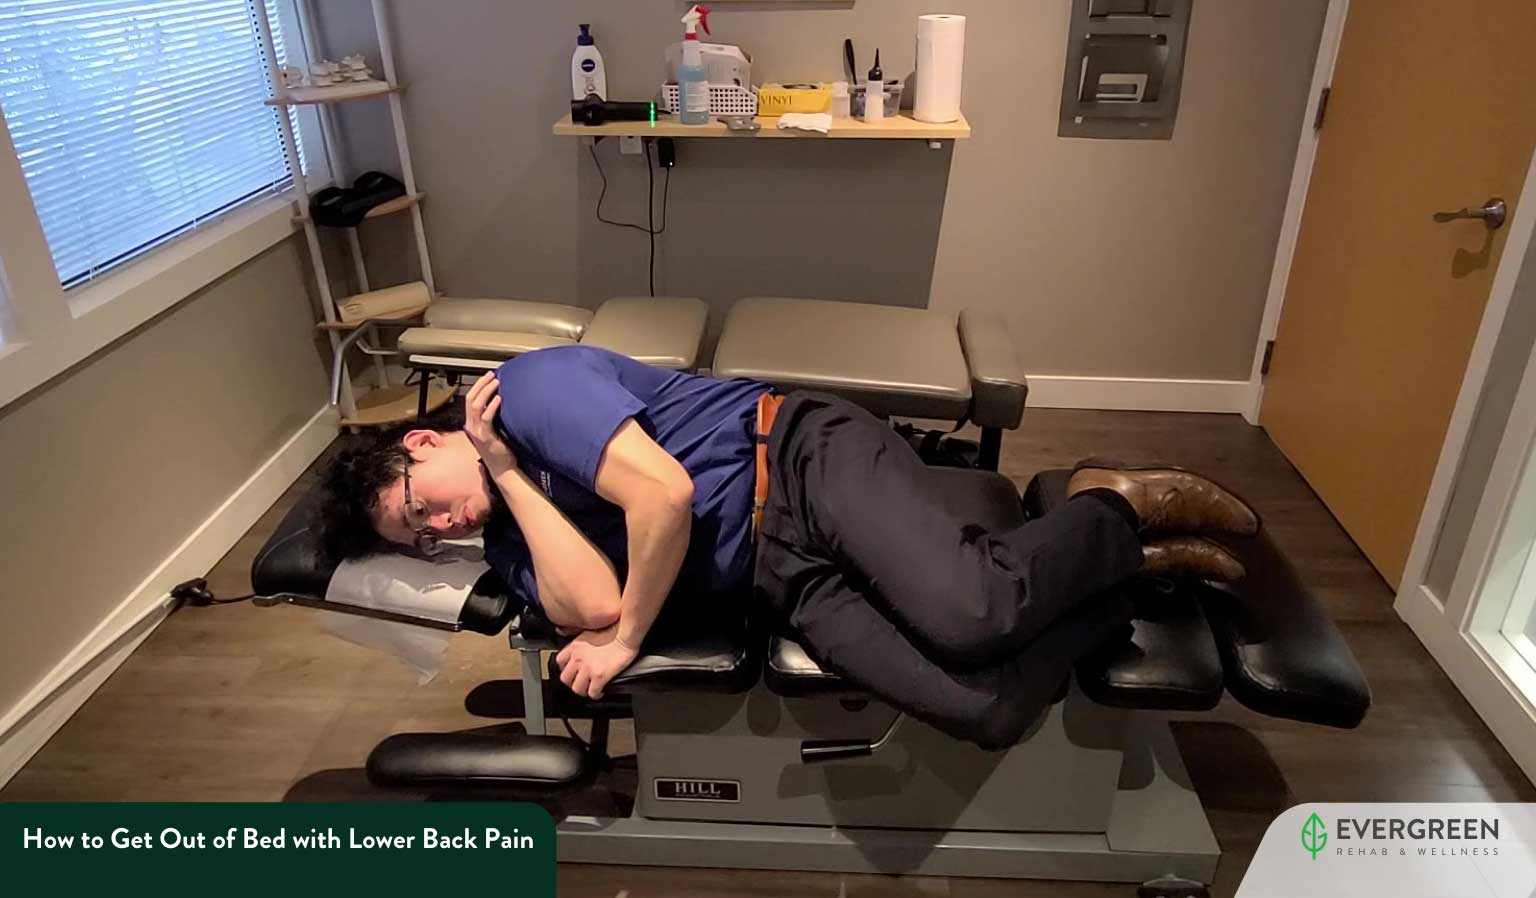 How to Get Out of Bed with Lower Back Pain